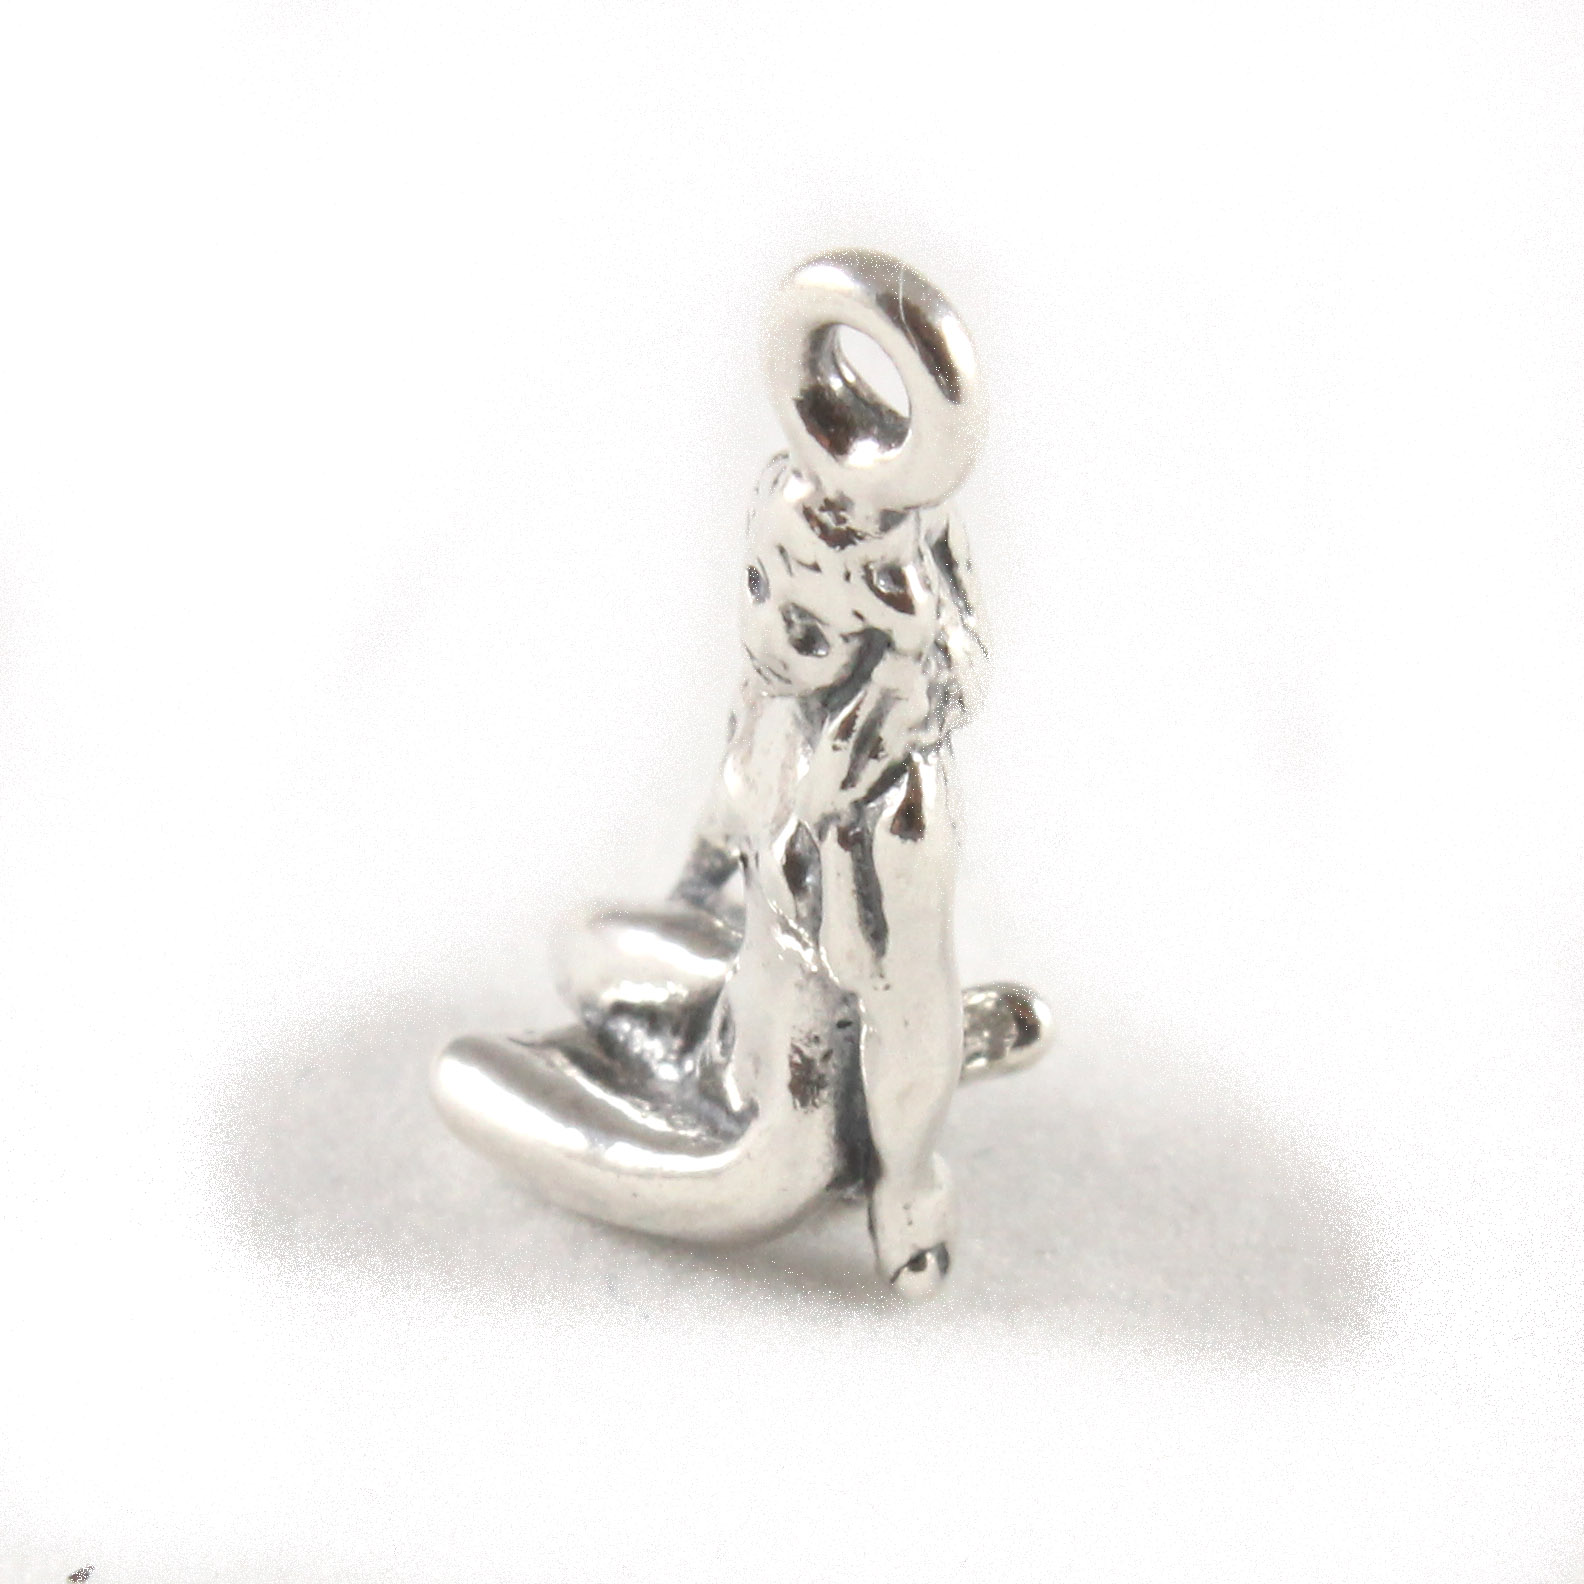 Beautiful solid sterling silver charm that will make the ideal